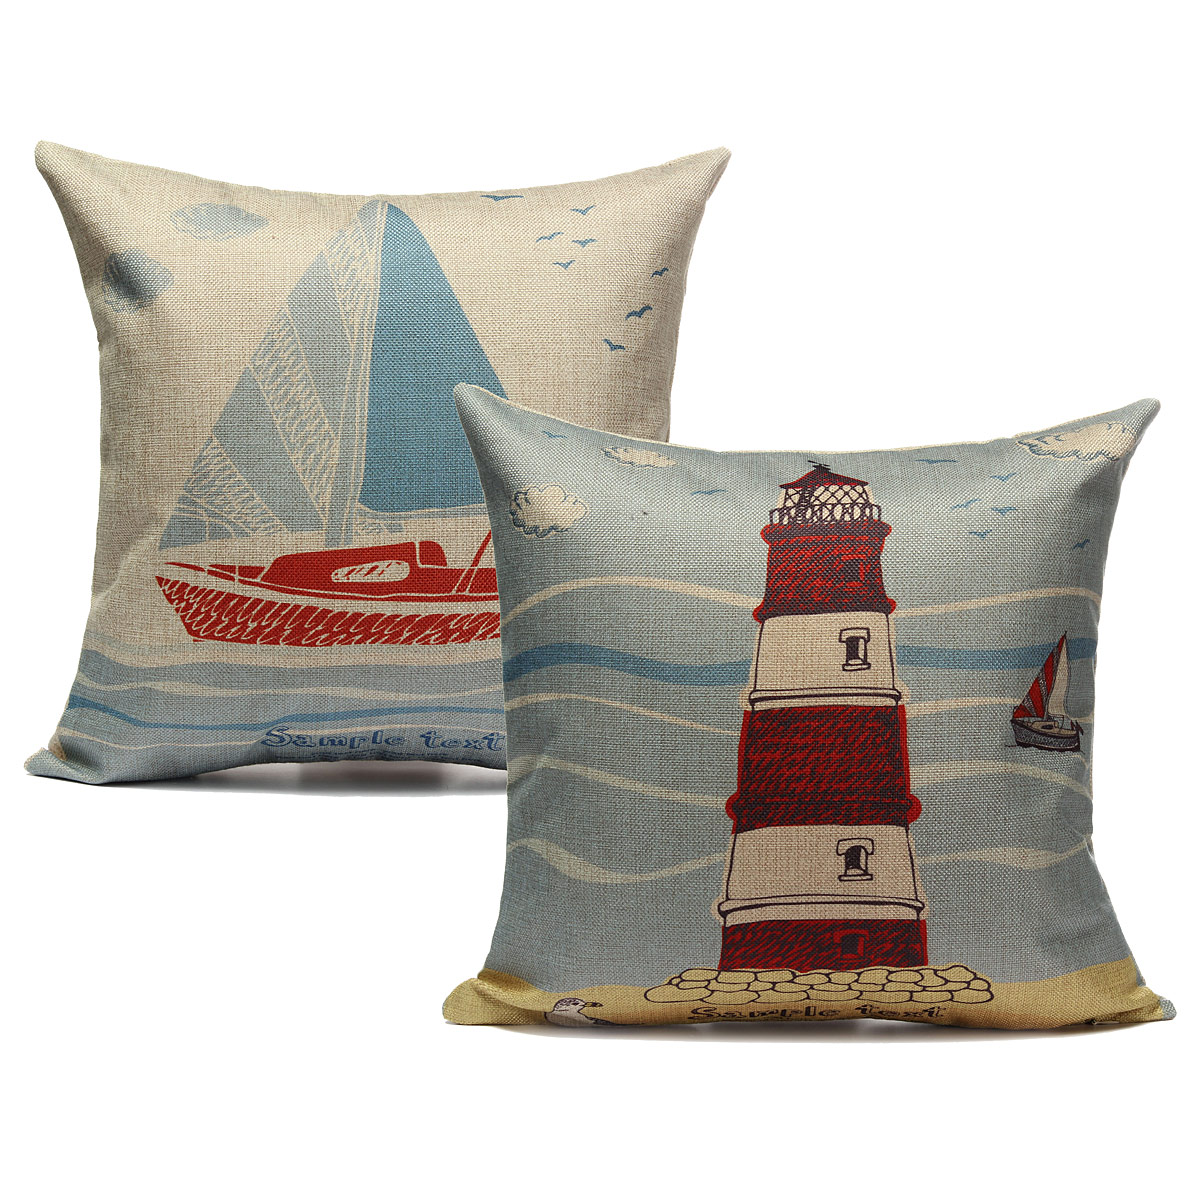 Decorative Pillows For Yachts : Linen Ocean Sailing Boat Throw Pillow Case Car Back Cushion Cover Home Decor eBay